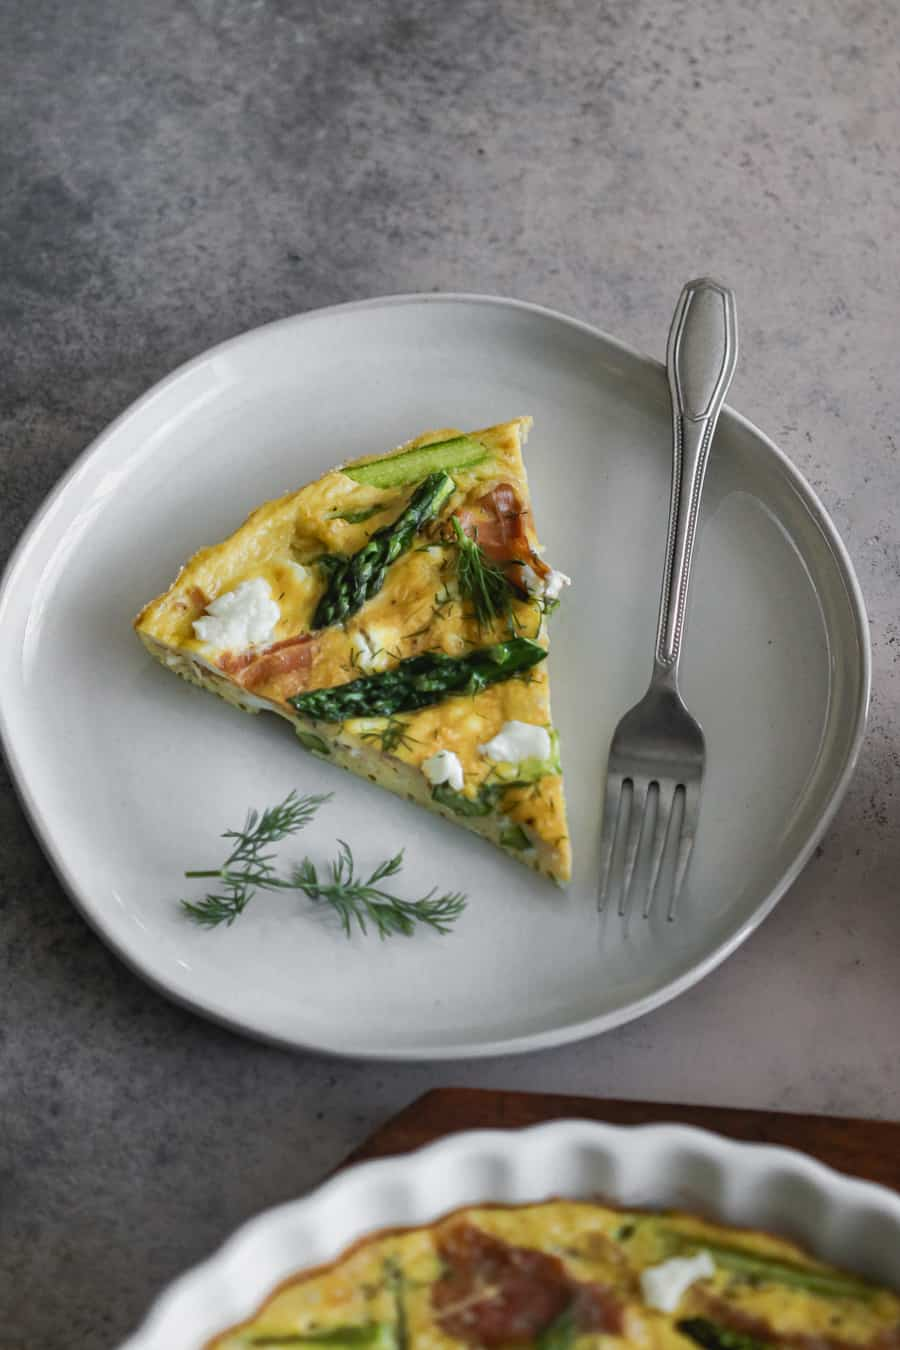 Asparagus and Prosciutto Baked Frittata Casserole